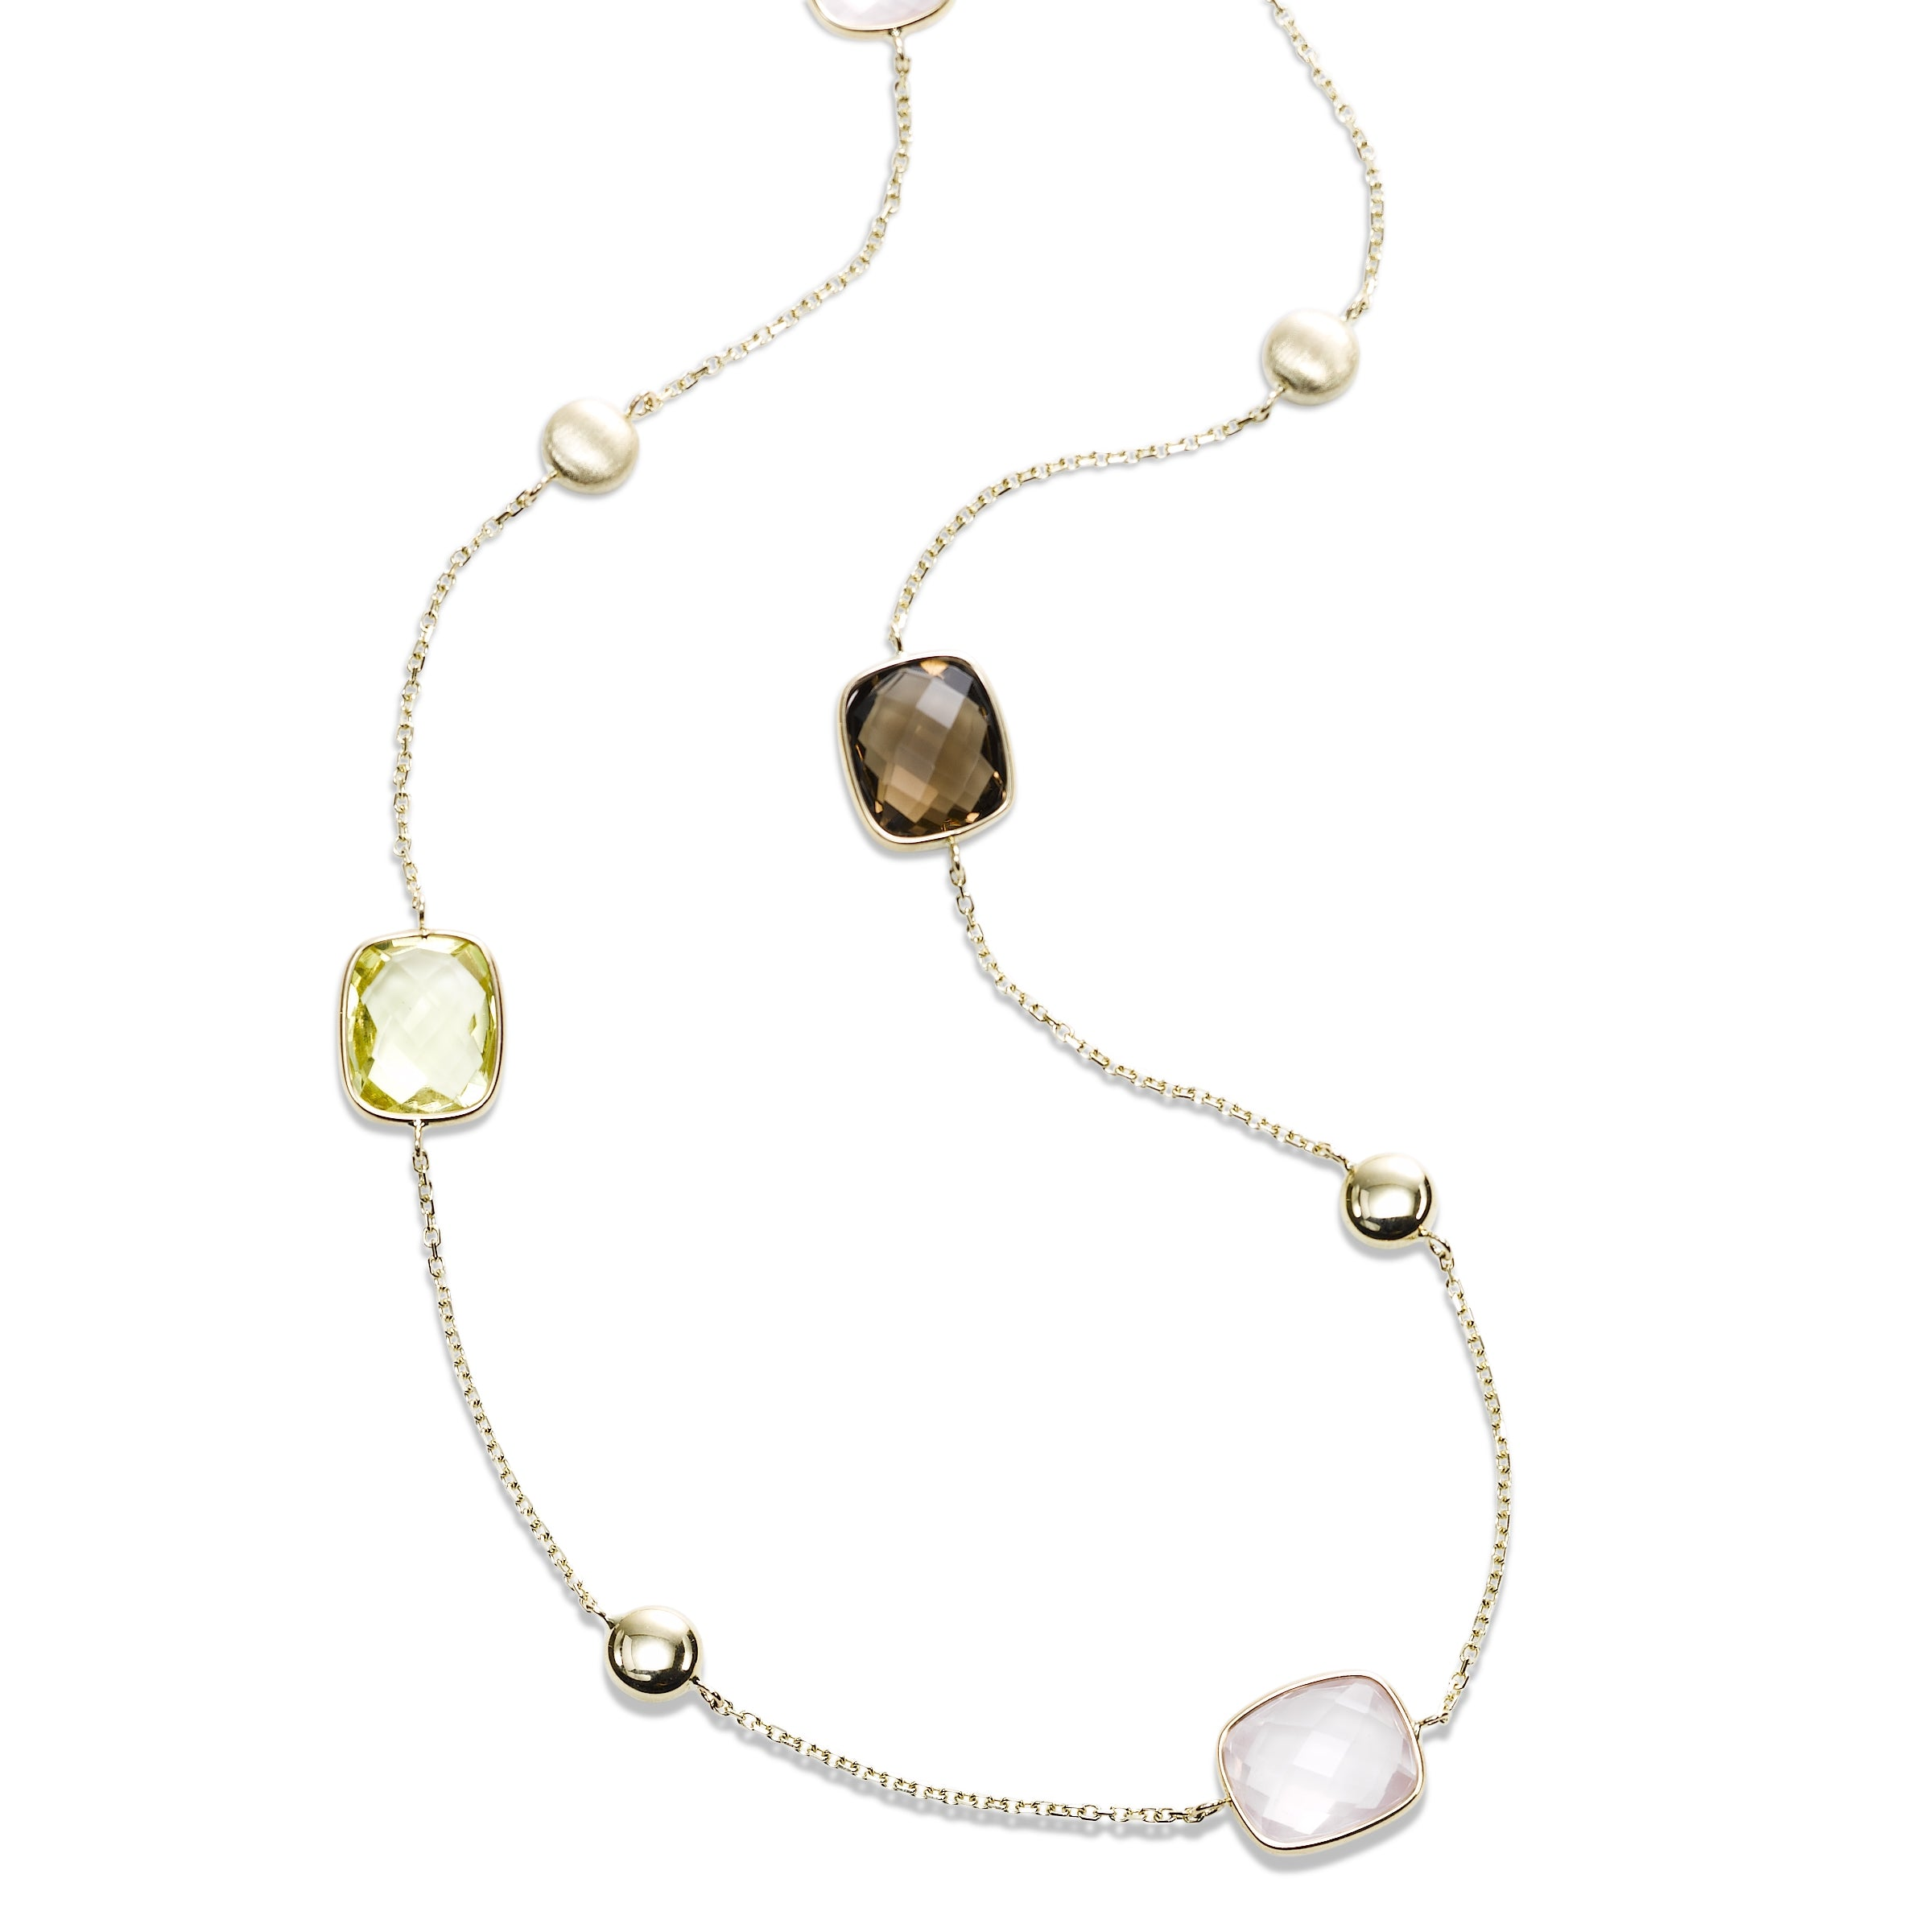 Multi Stone Cushion Shape Station Necklace, 36 Inches, 14K Yellow Gold